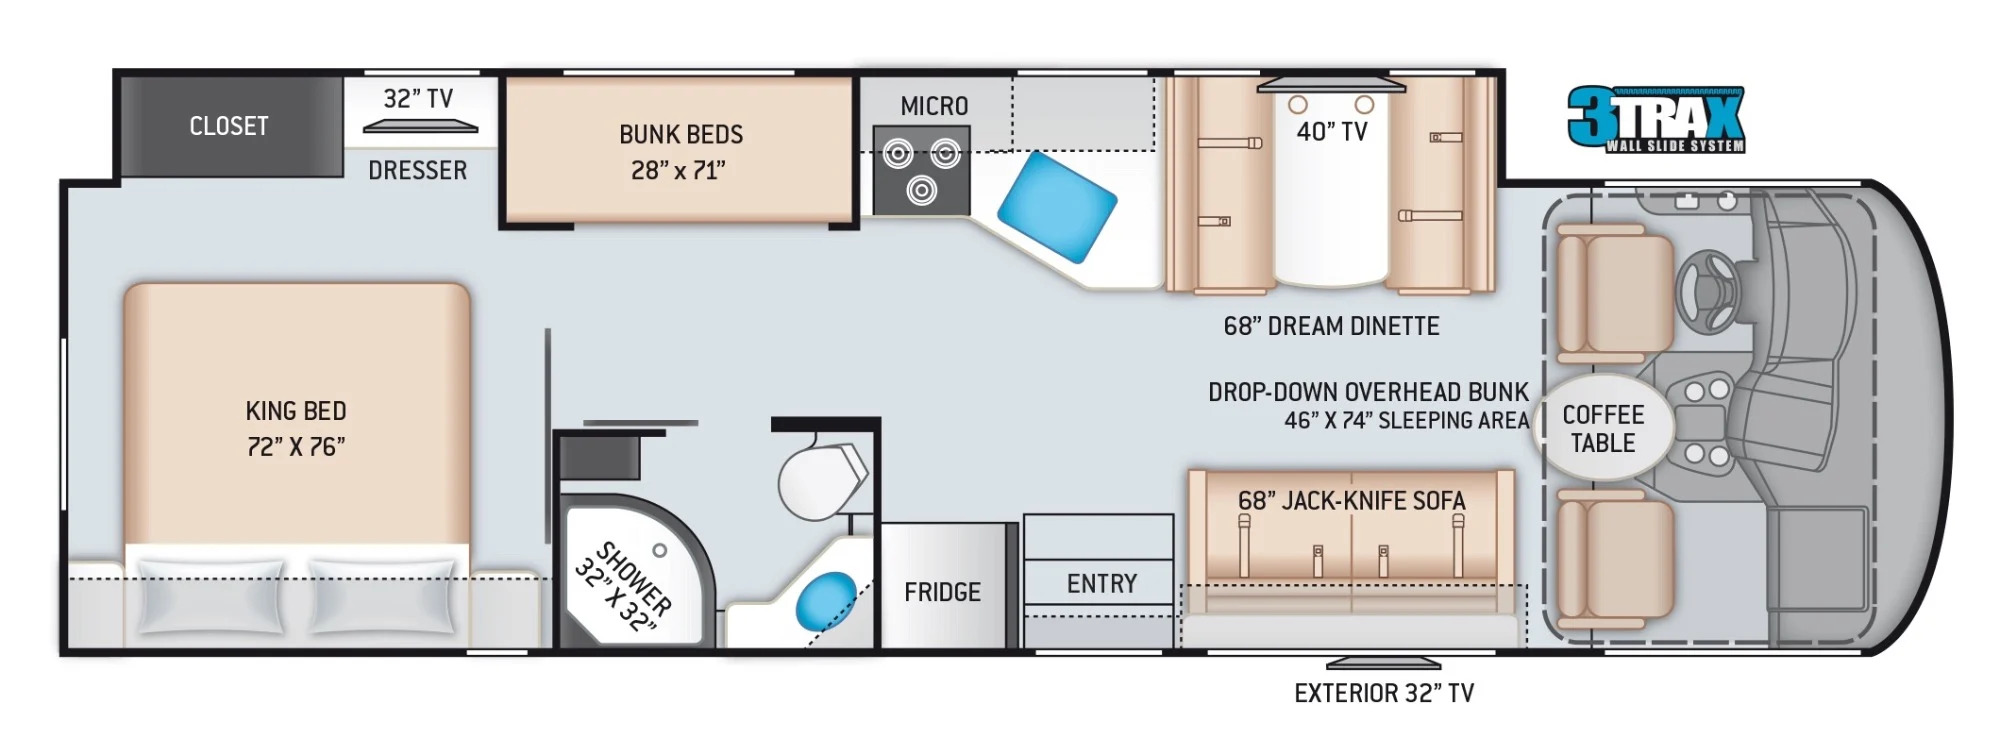 View Floor Plan for 2022 THOR ACE 32.3